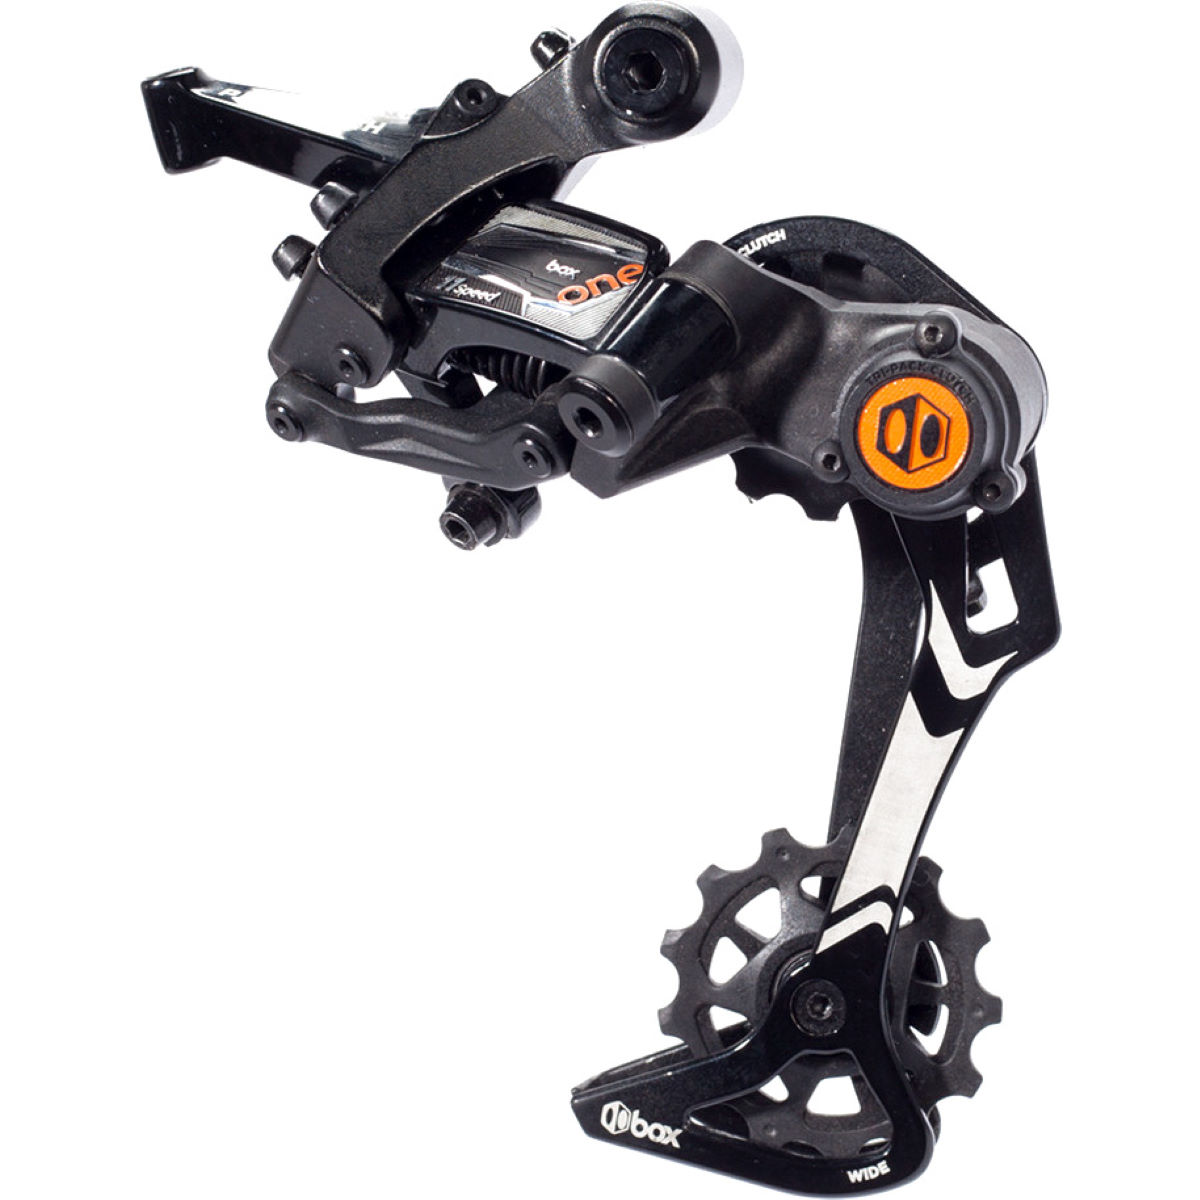 Box One 11 Speed Rear Derailleur - Cambios traseros